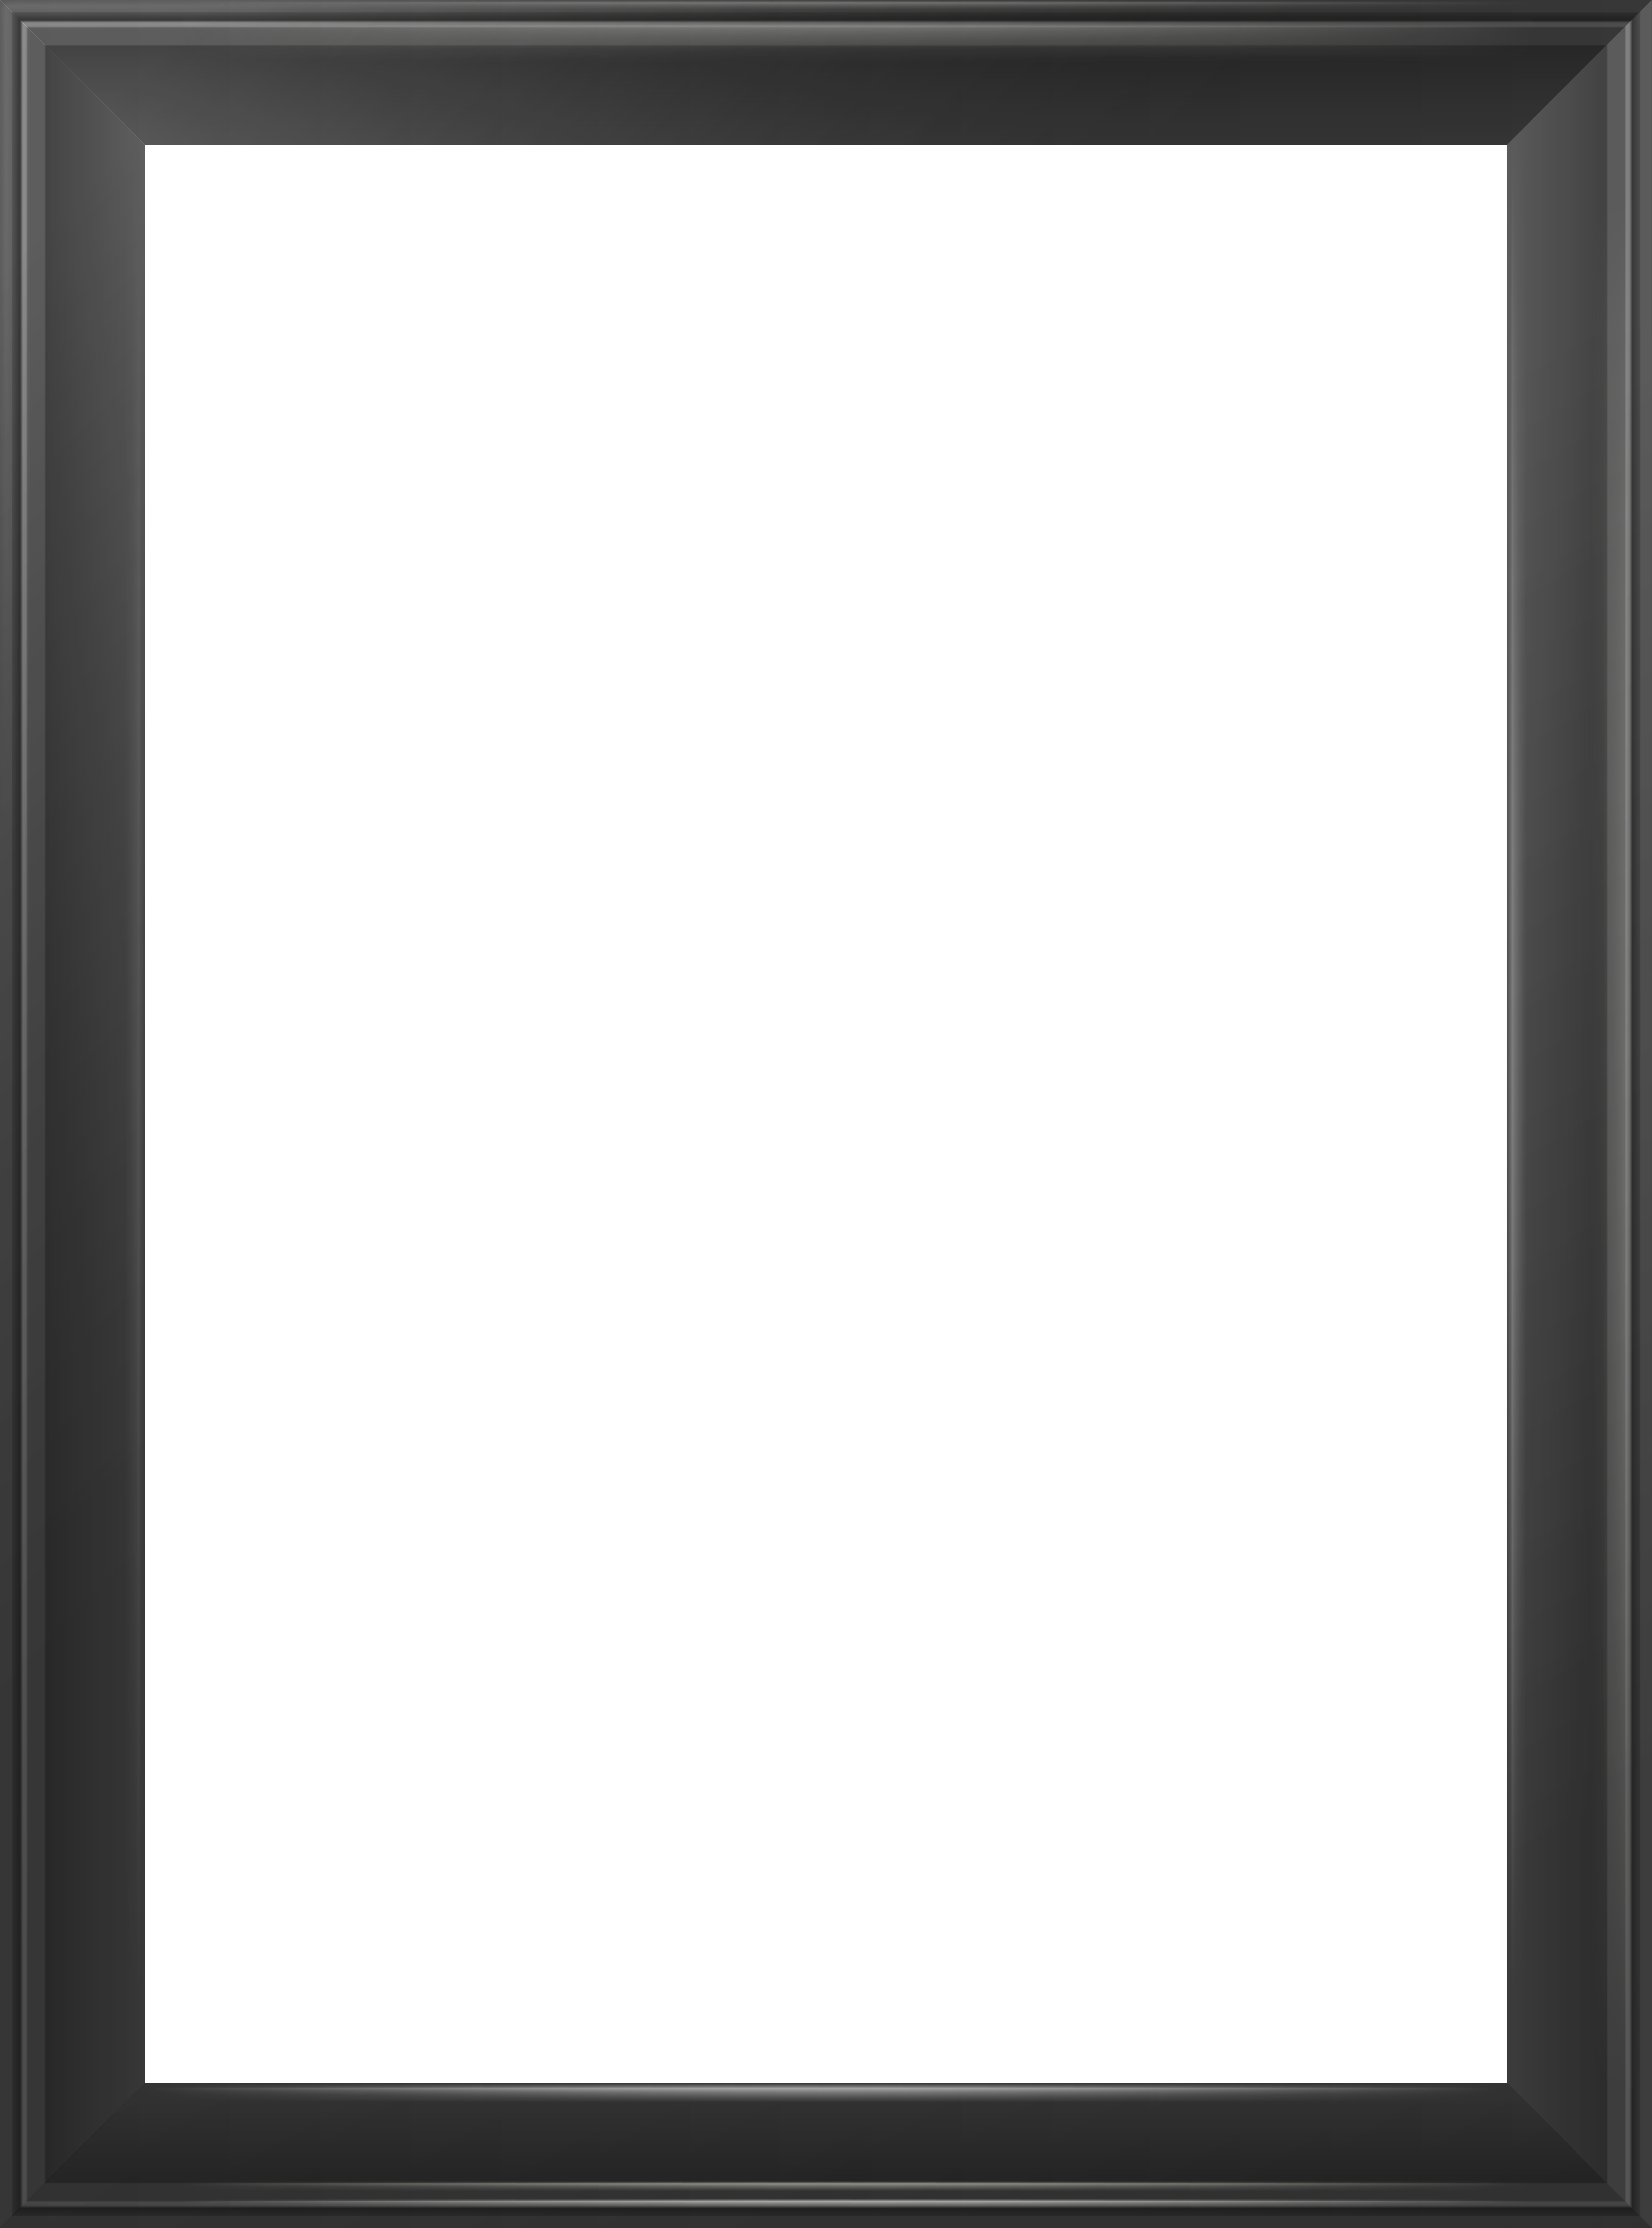 Black frame png. Transparent classic image gallery